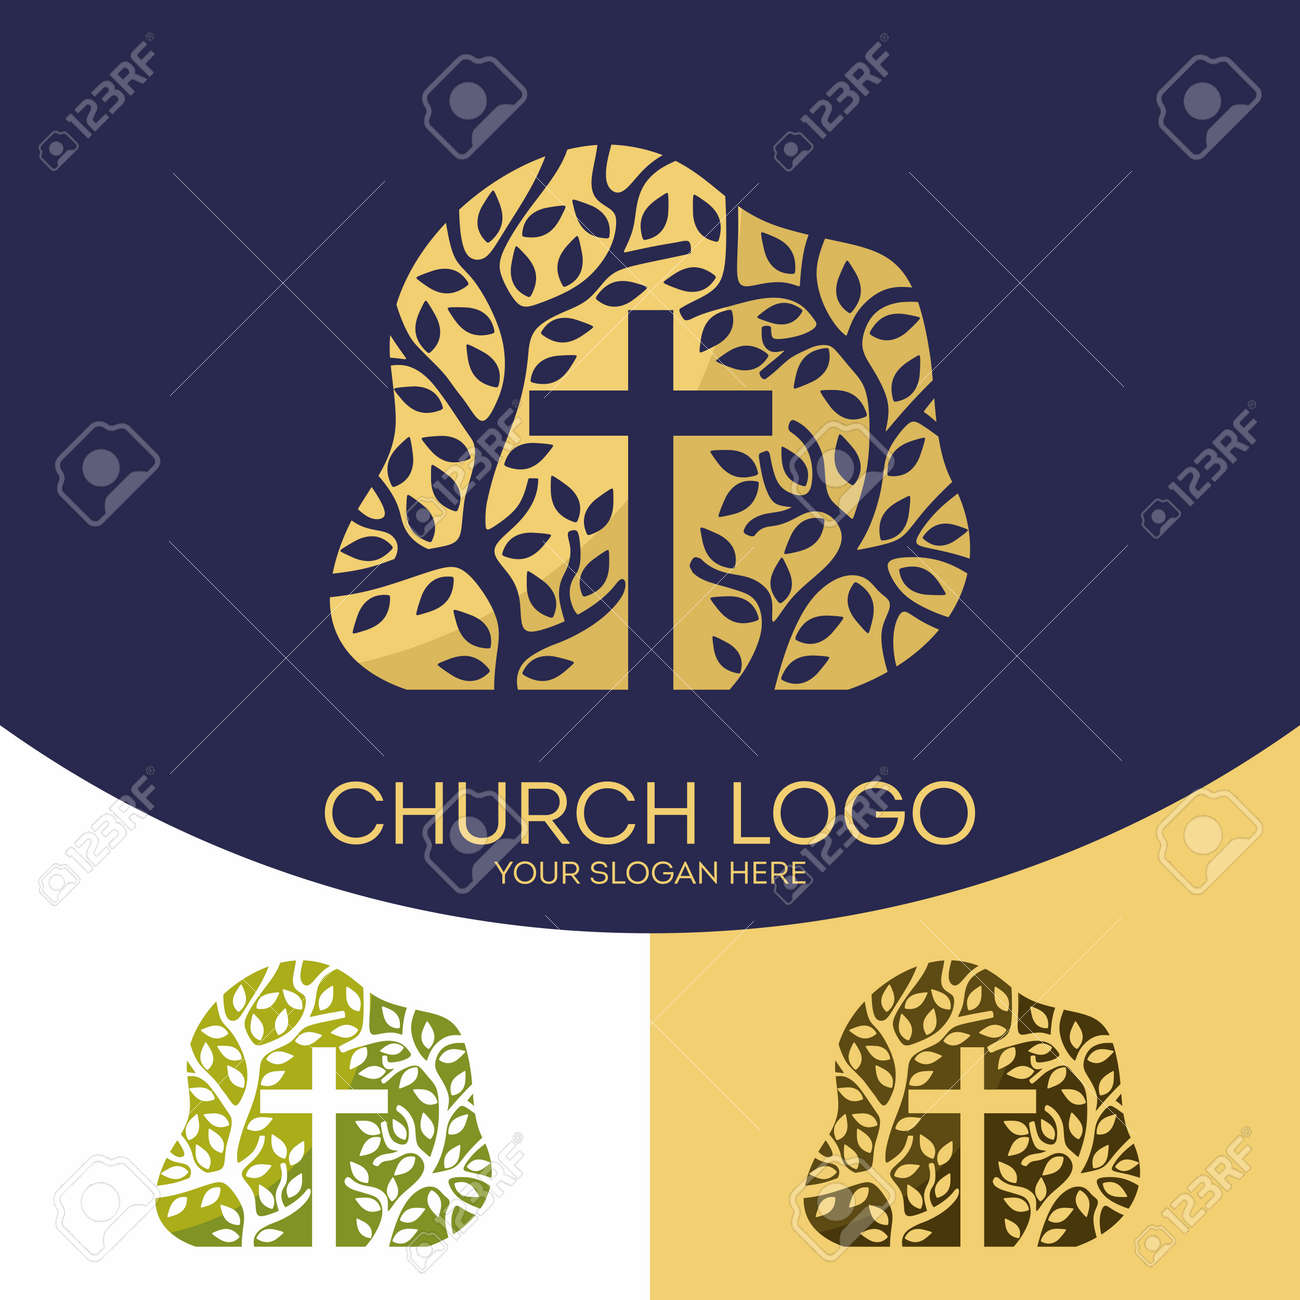 Church logo christian symbols the cross of jesus christ and church logo christian symbols the cross of jesus christ and the tree as a buycottarizona Image collections